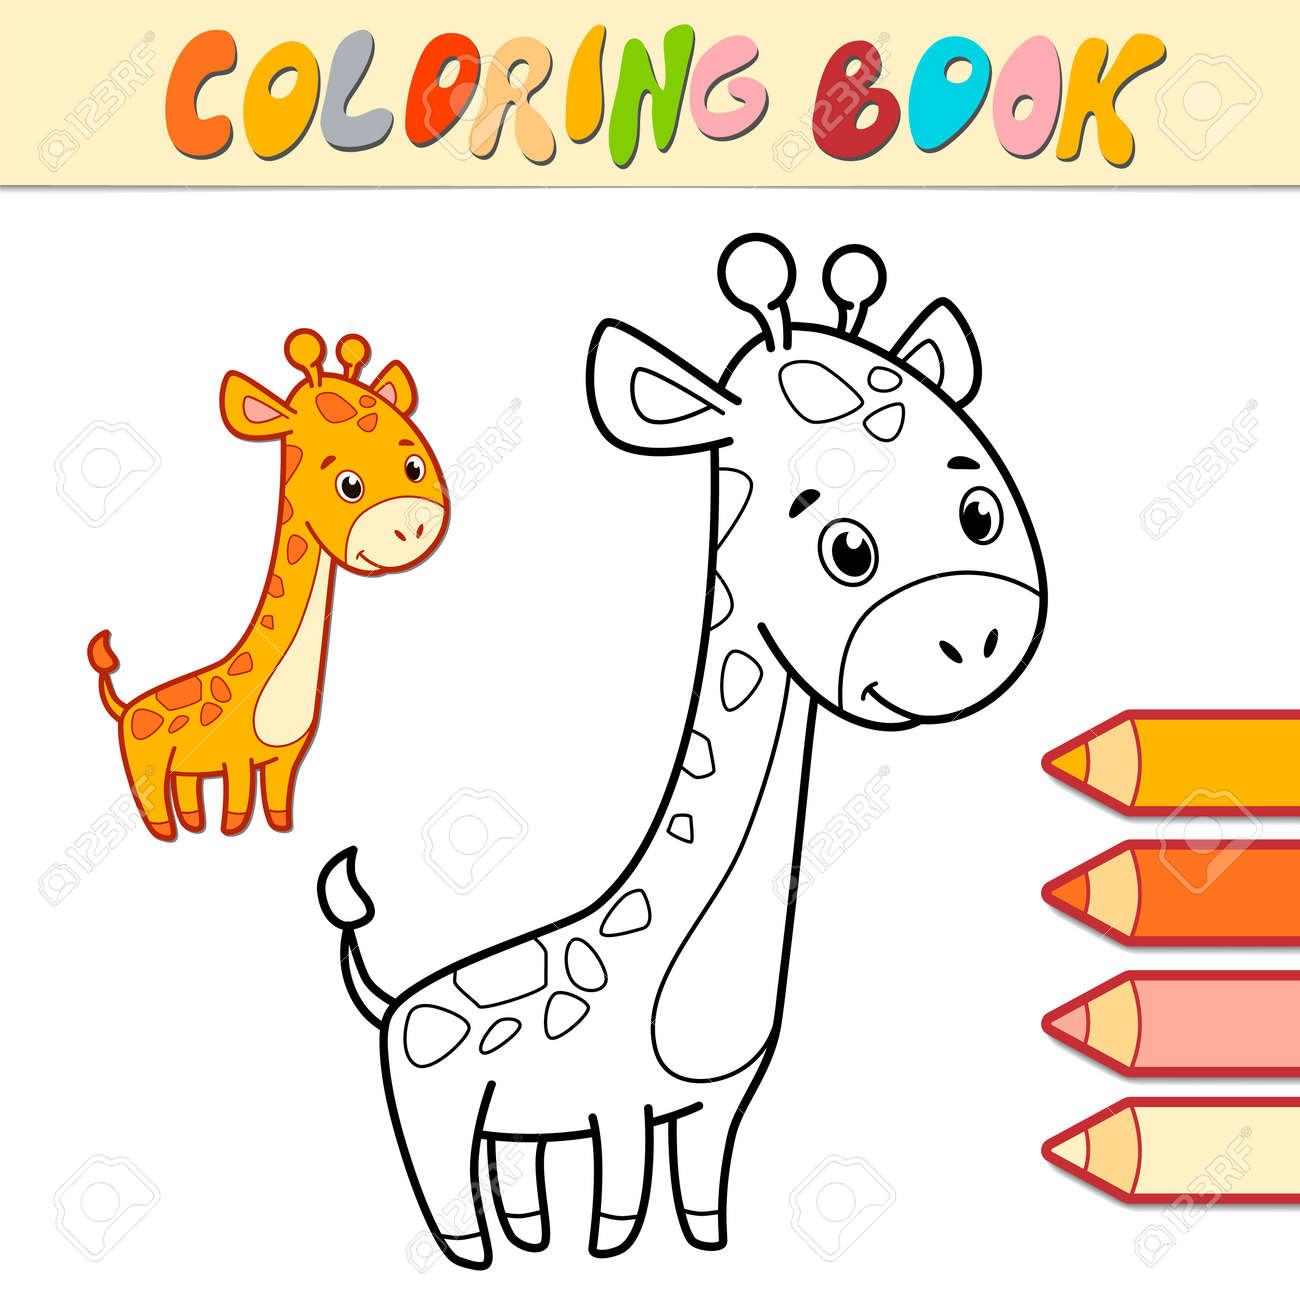 Coloring book or page for kids. giraffe black and white vector illustration - 168779443